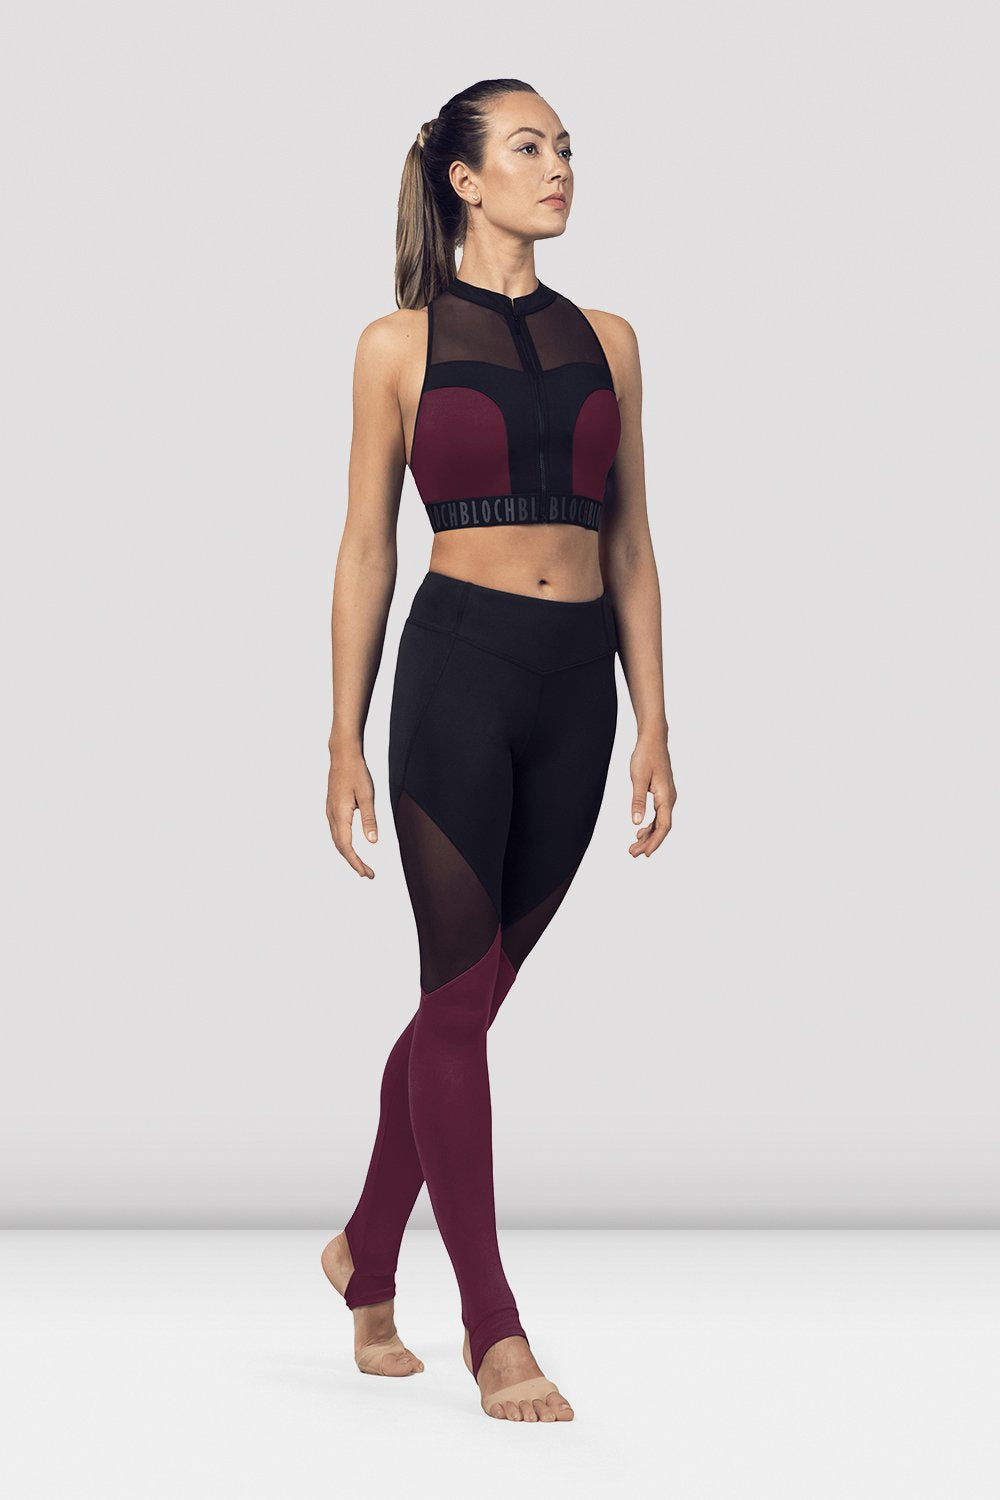 DewberryBloch Ladies Zip Front Mesh Back Crop Top on female model in parallel fourth position on releve facing corner